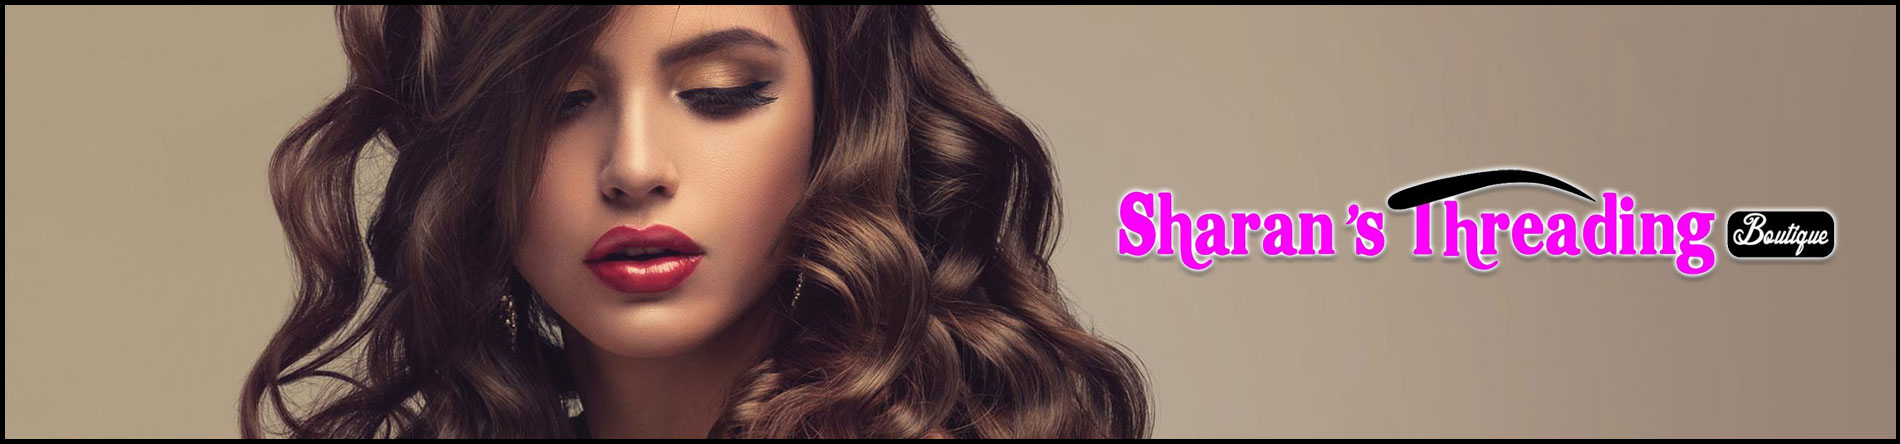 Sharans Threading Boutique Is A Beauty Salon In Fremont Ca